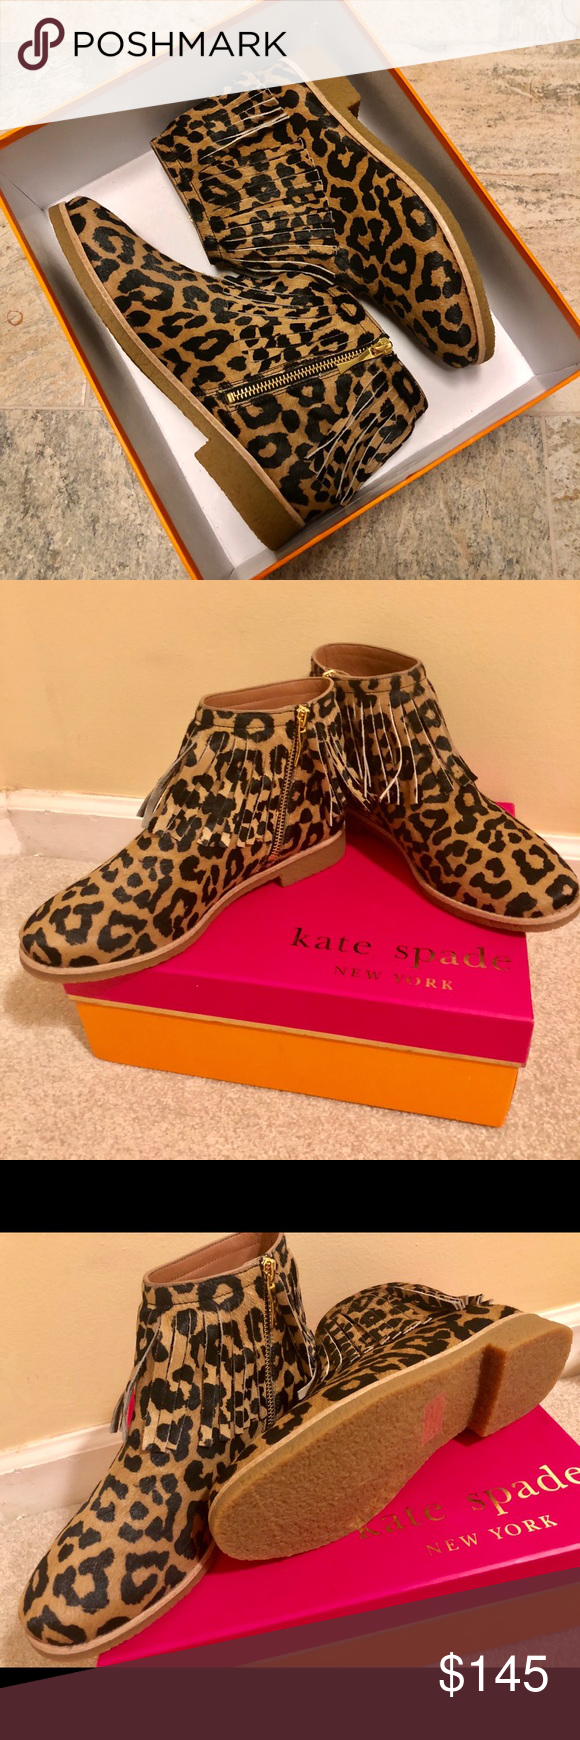 952adc82d868 Kate Spade Bettie Too Fringe Bootie Bohemian chic ankle booties crafted  from glamorous leopard print calf